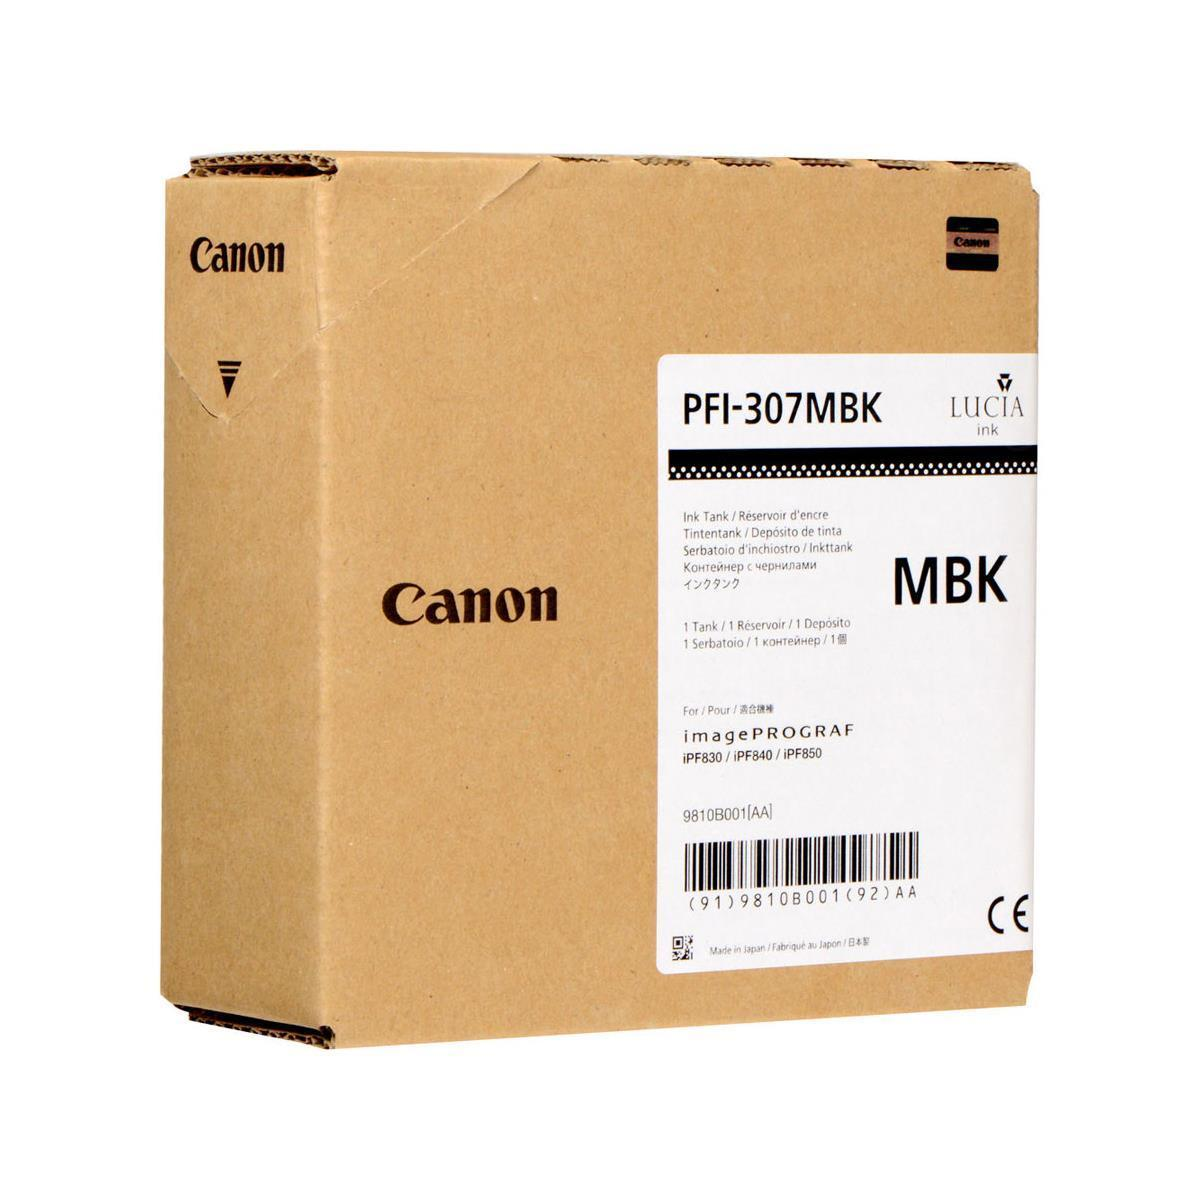 Canon PFI-307MBK Matte Black 330ml Ink Cartridge, OEM